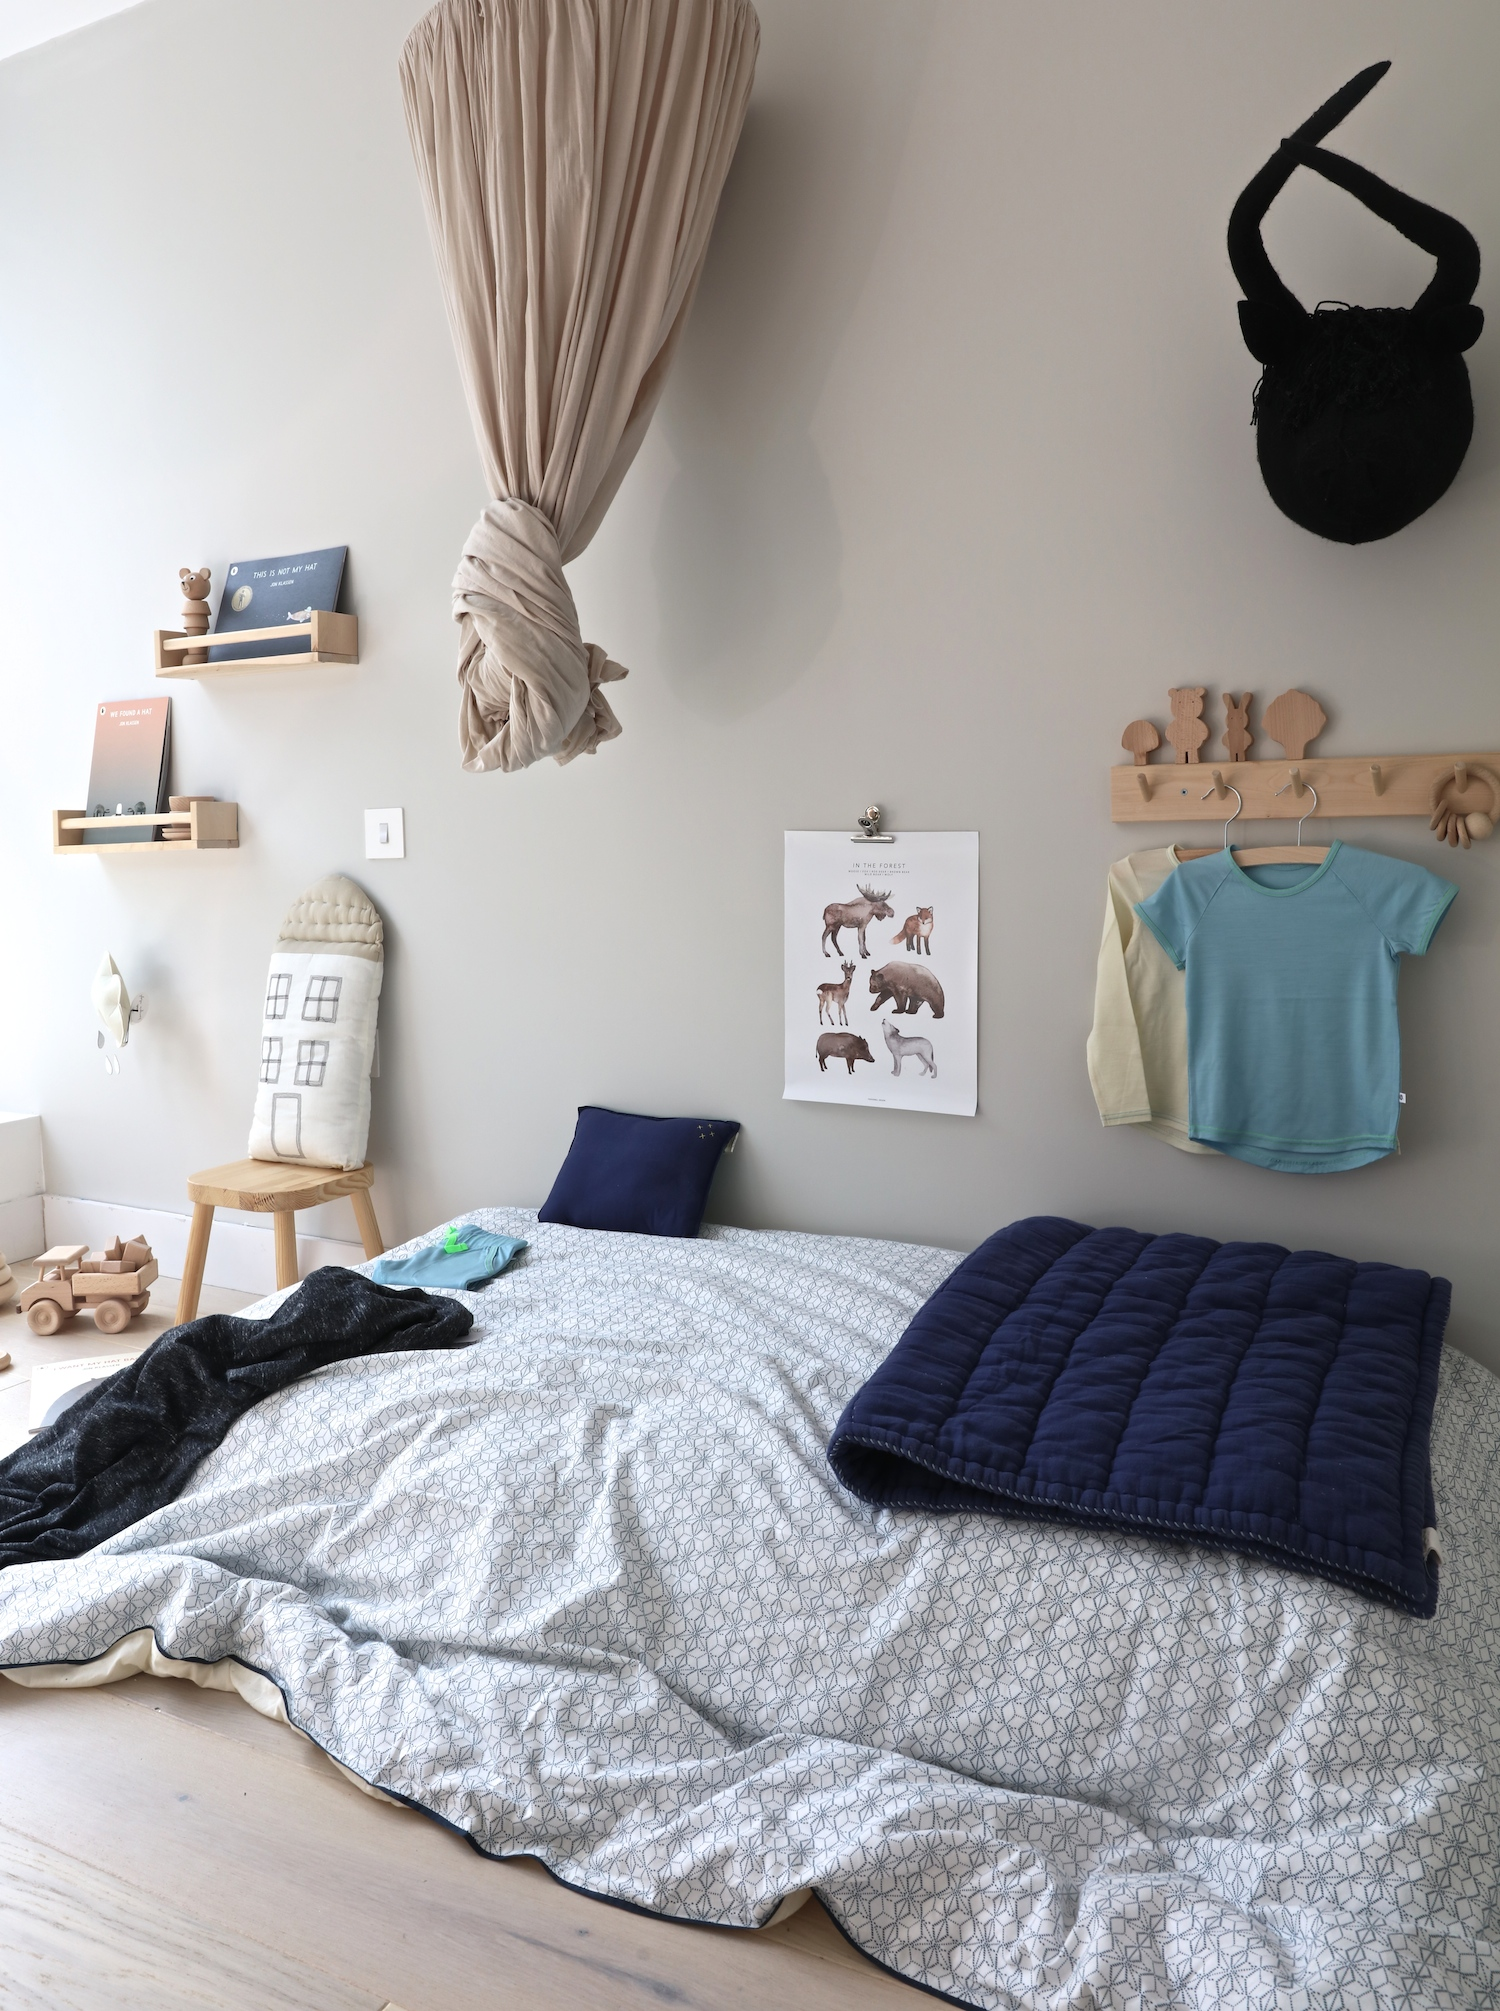 Love_my_smalls_pyjamas_vest_camomile_london_bedding_mollly_meg_canopy